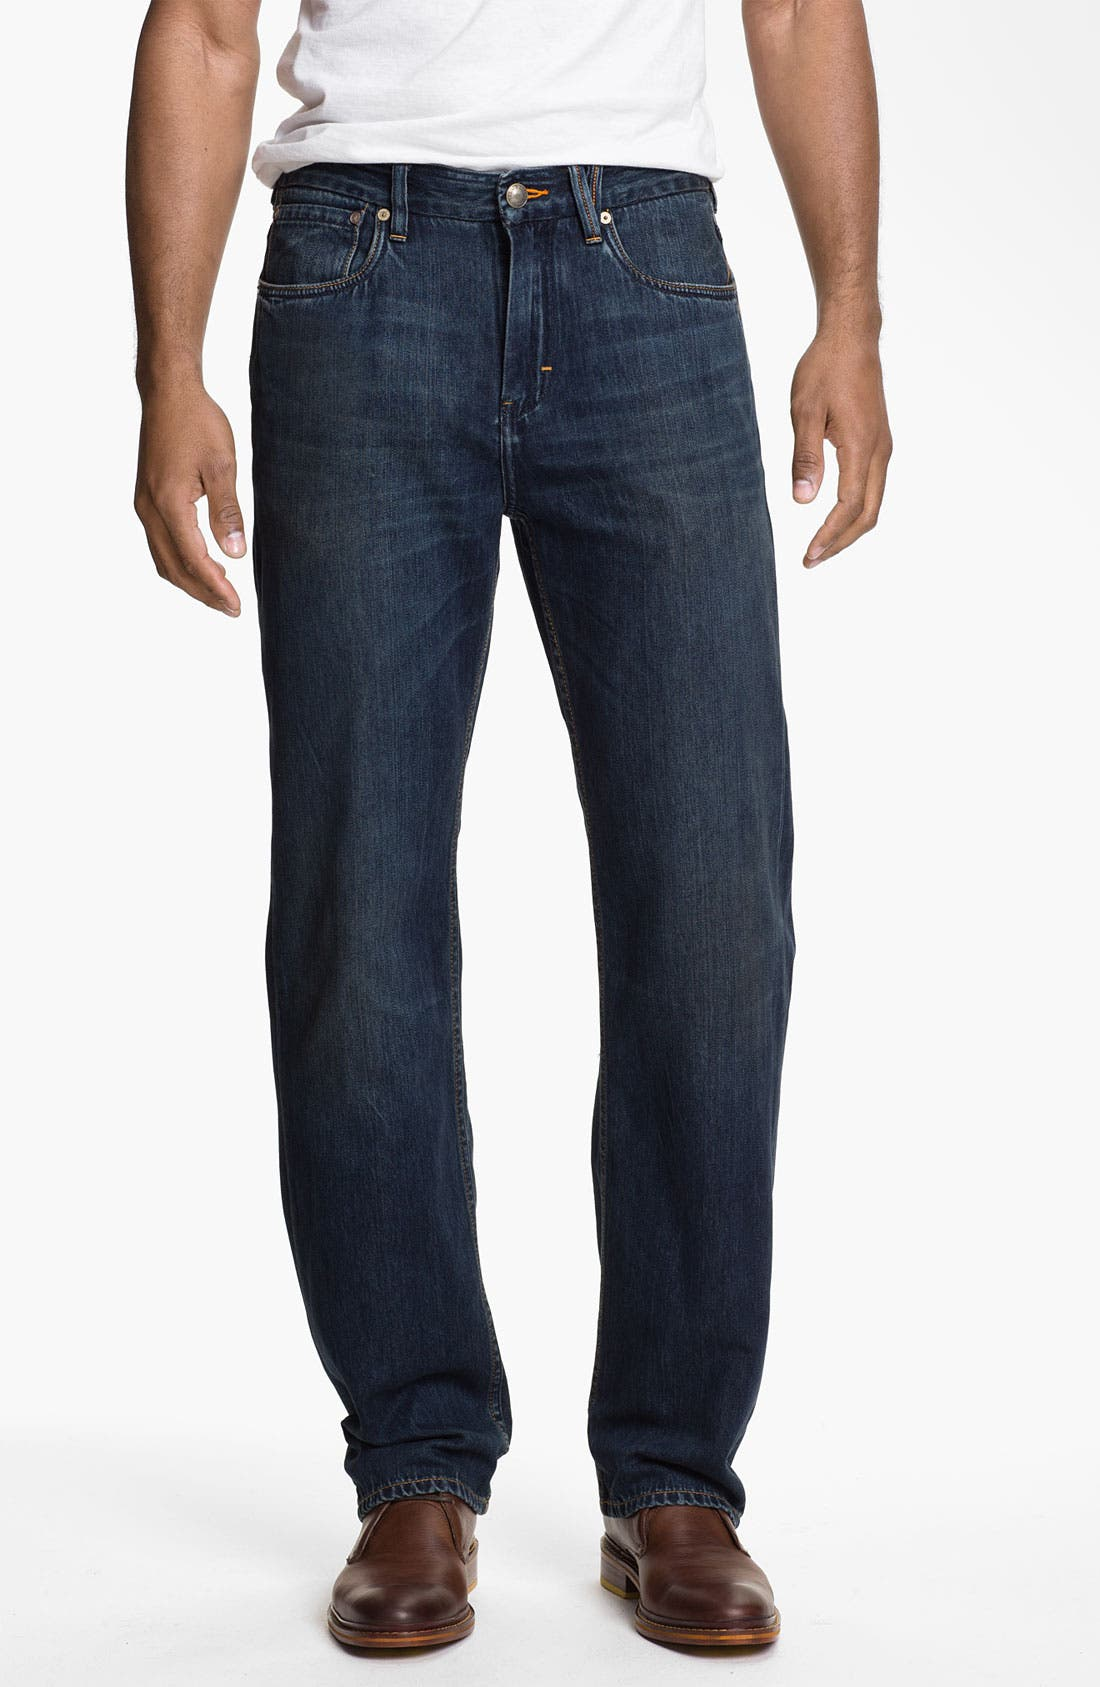 Alternate Image 1 Selected - Tommy Bahama Denim 'Coastal Island Ease' Straight Leg Jeans (Dark Storm)